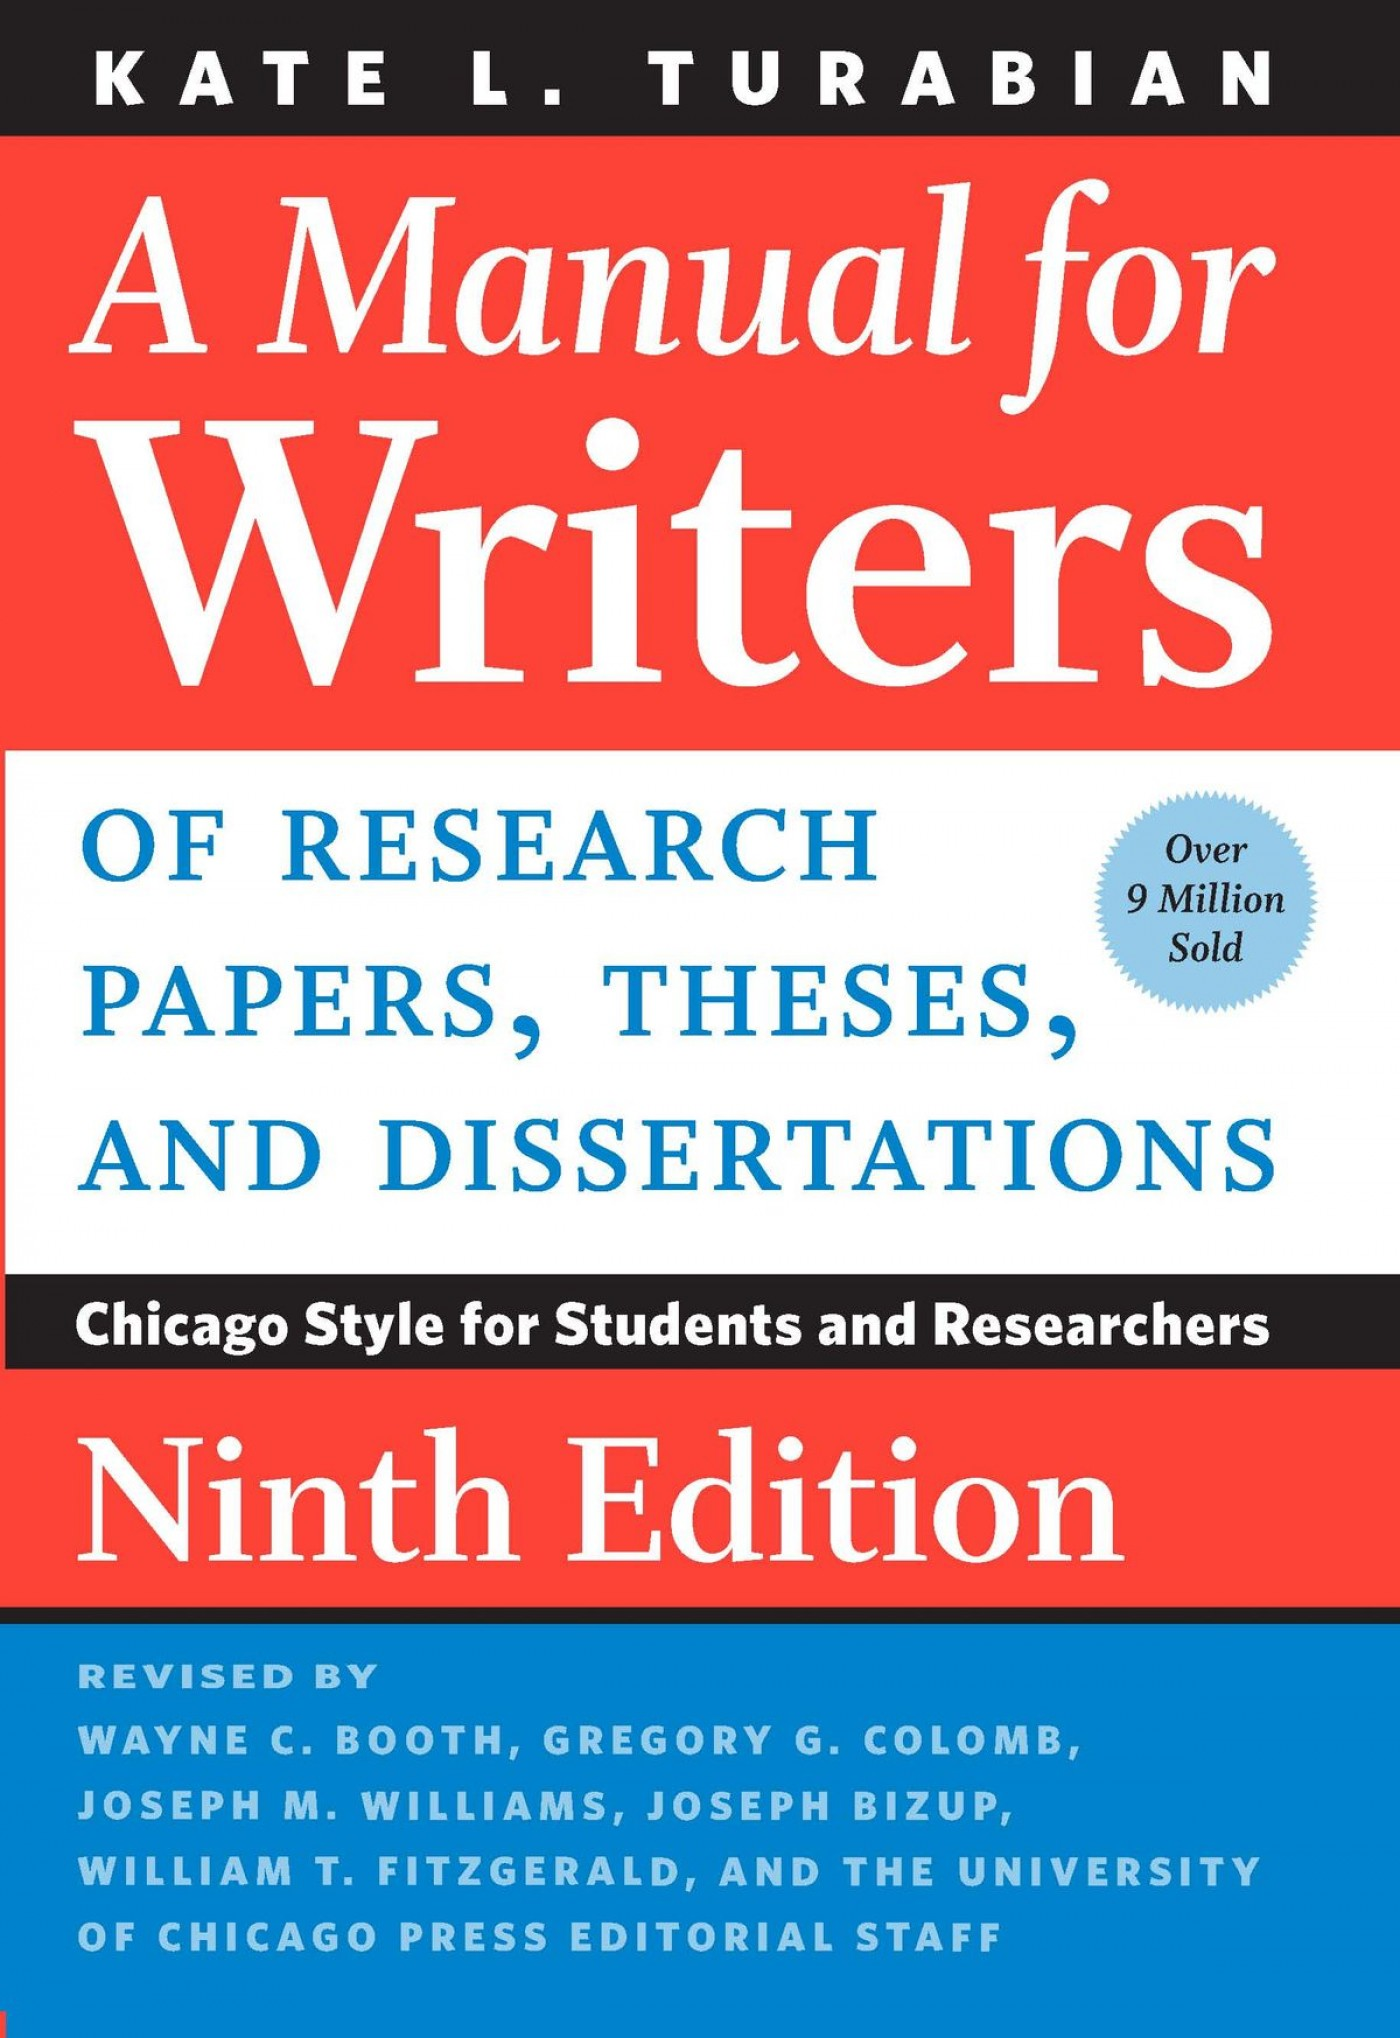 001 Research Paper Manual For Writers Of Papers Theses And Dissertations Turabian Pdf Ninth Wonderful A 1400